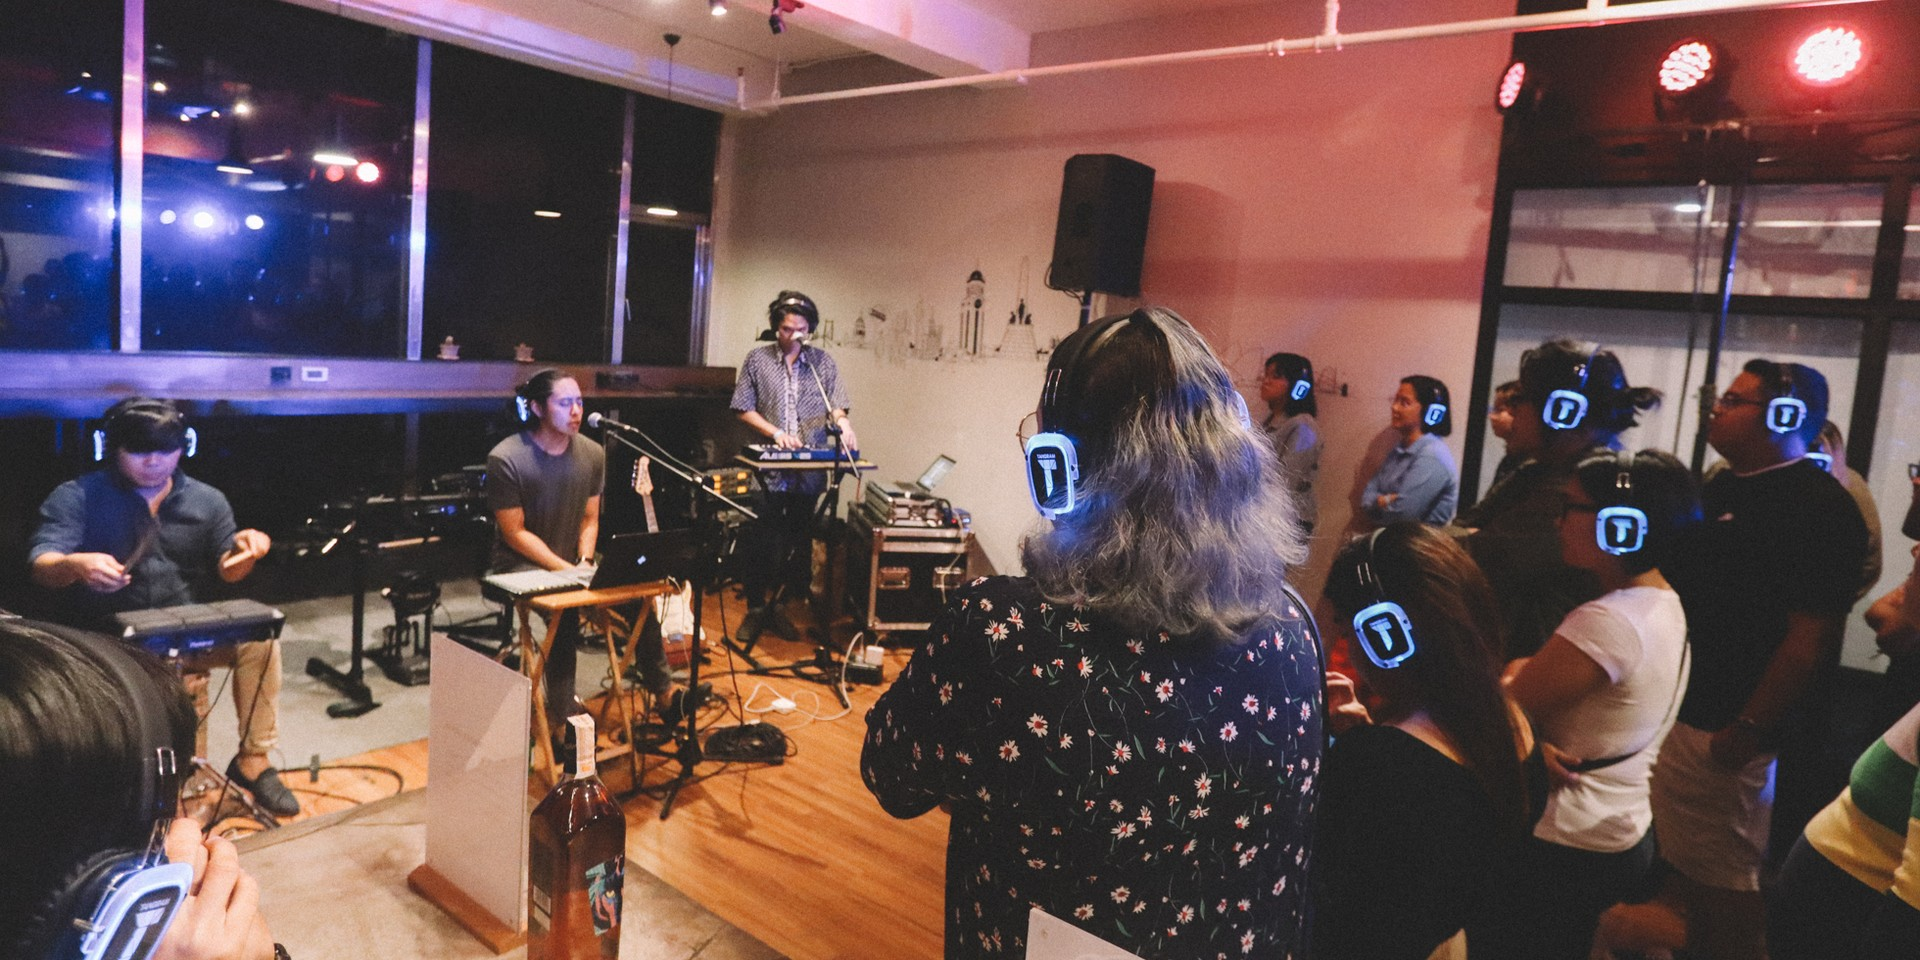 Tandems '91 and AOUI play intimate silent show as part of FIERE anniversary series – photo gallery